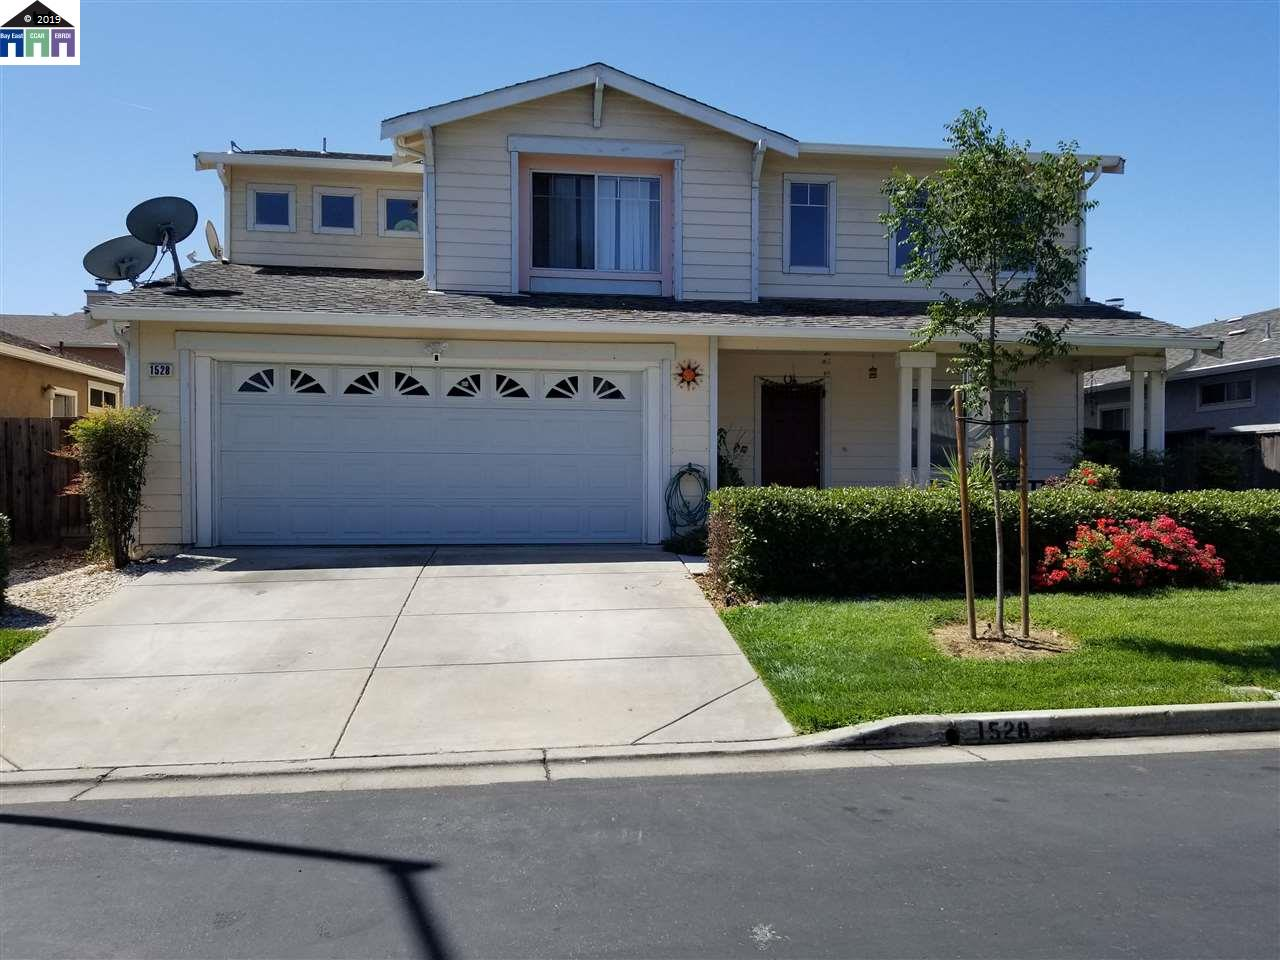 1528 Freed Cir, PITTSBURG, CA 94565